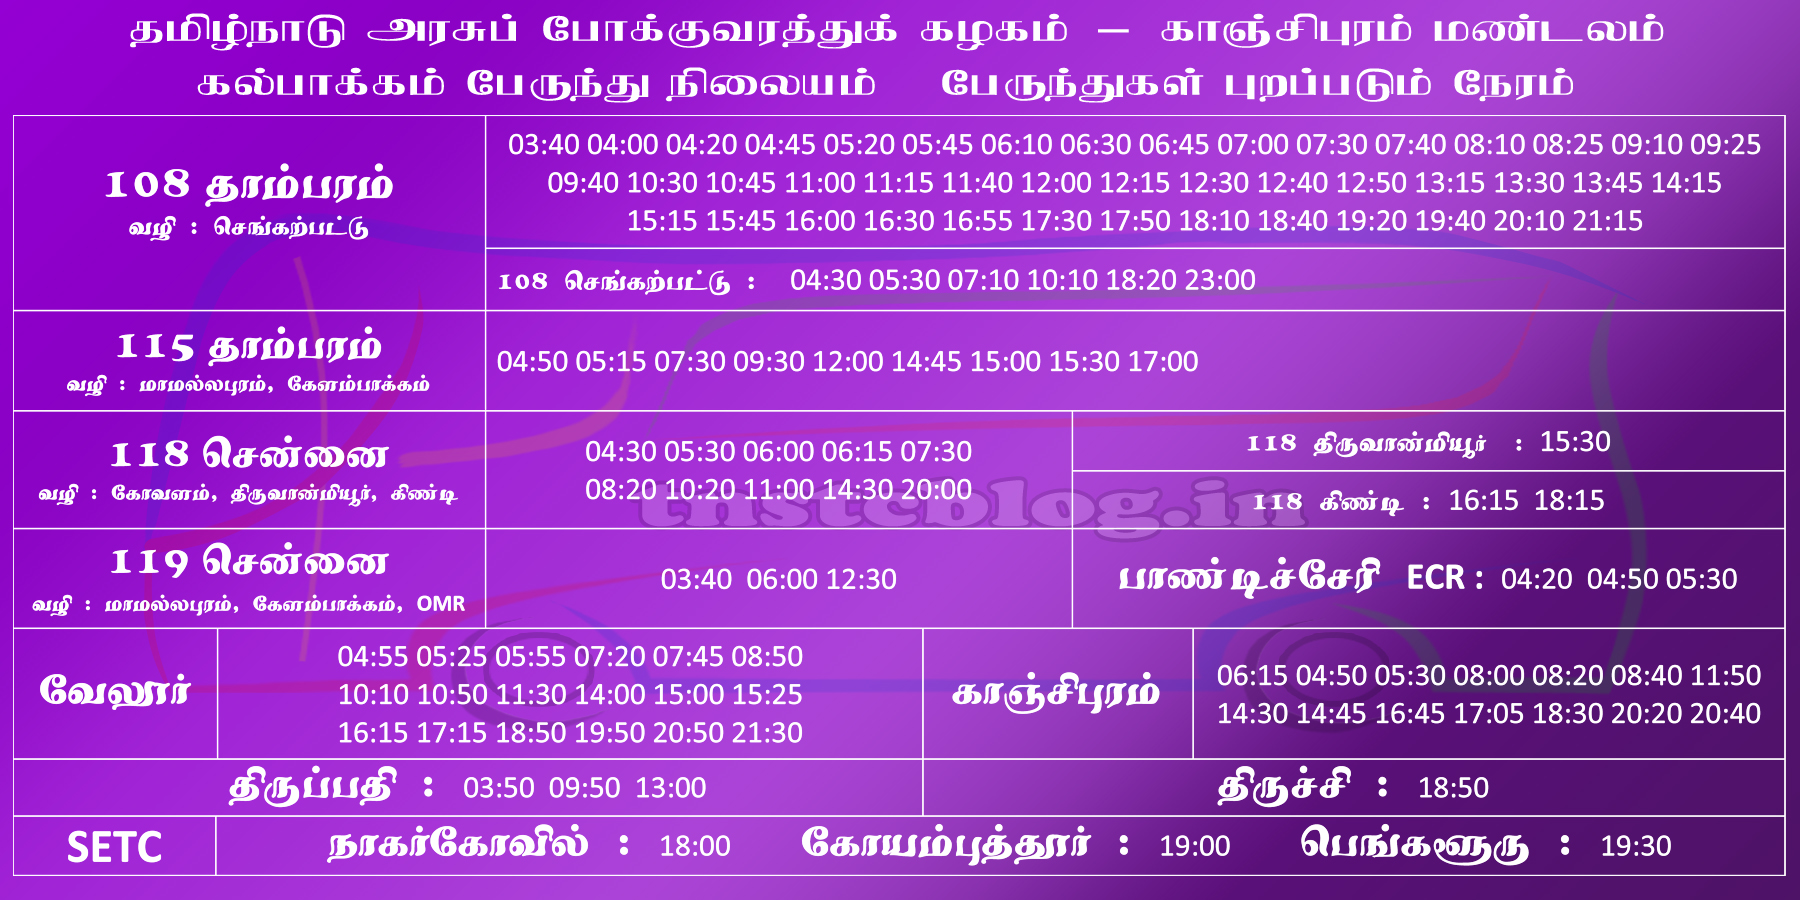 TNSTC SETC Timings from Kalpakkam